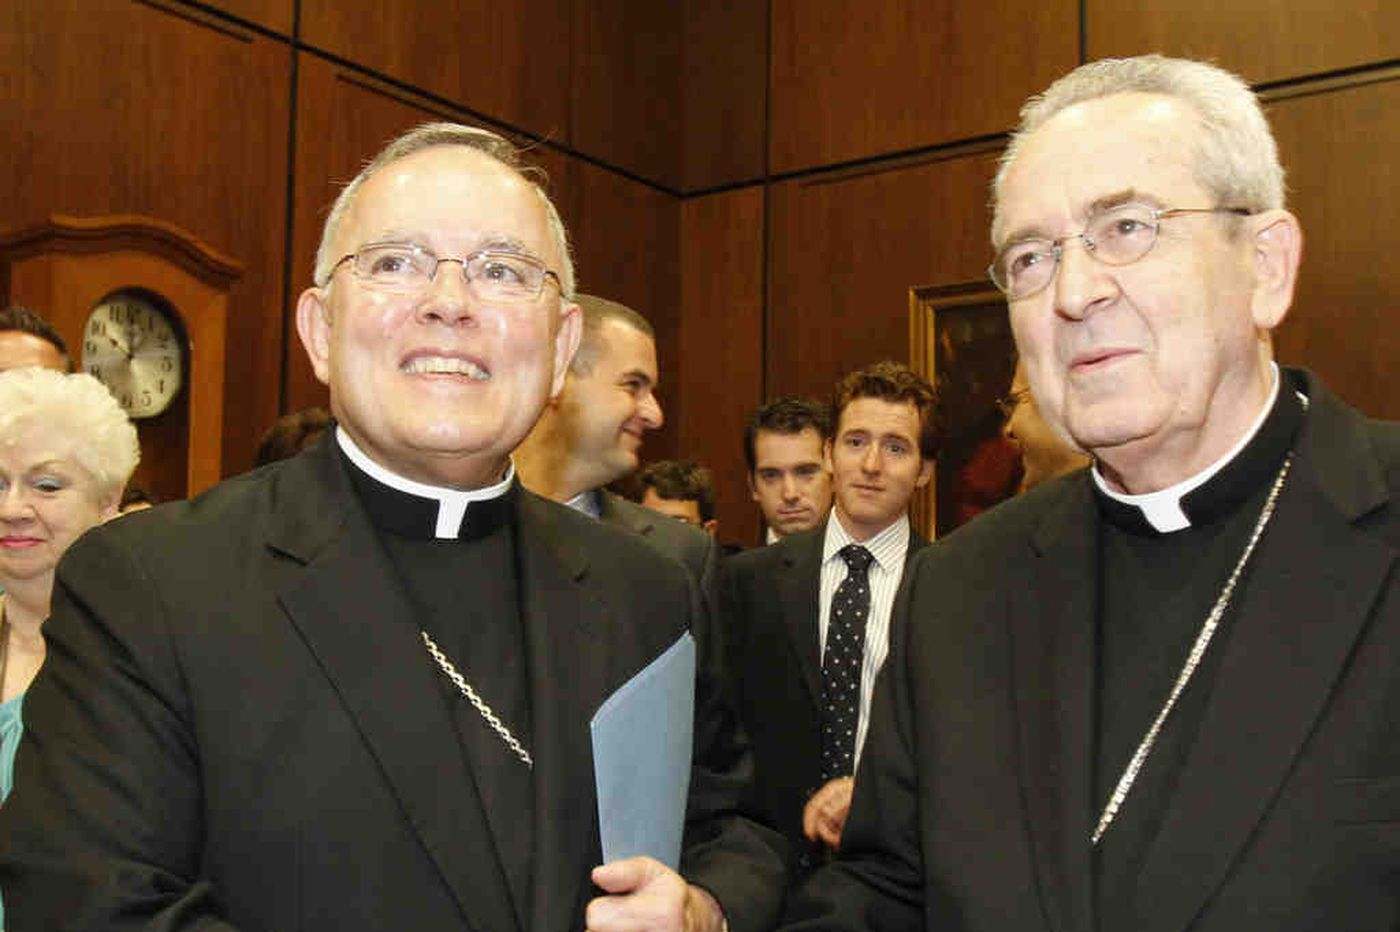 Fates of suspended priests still in limbo